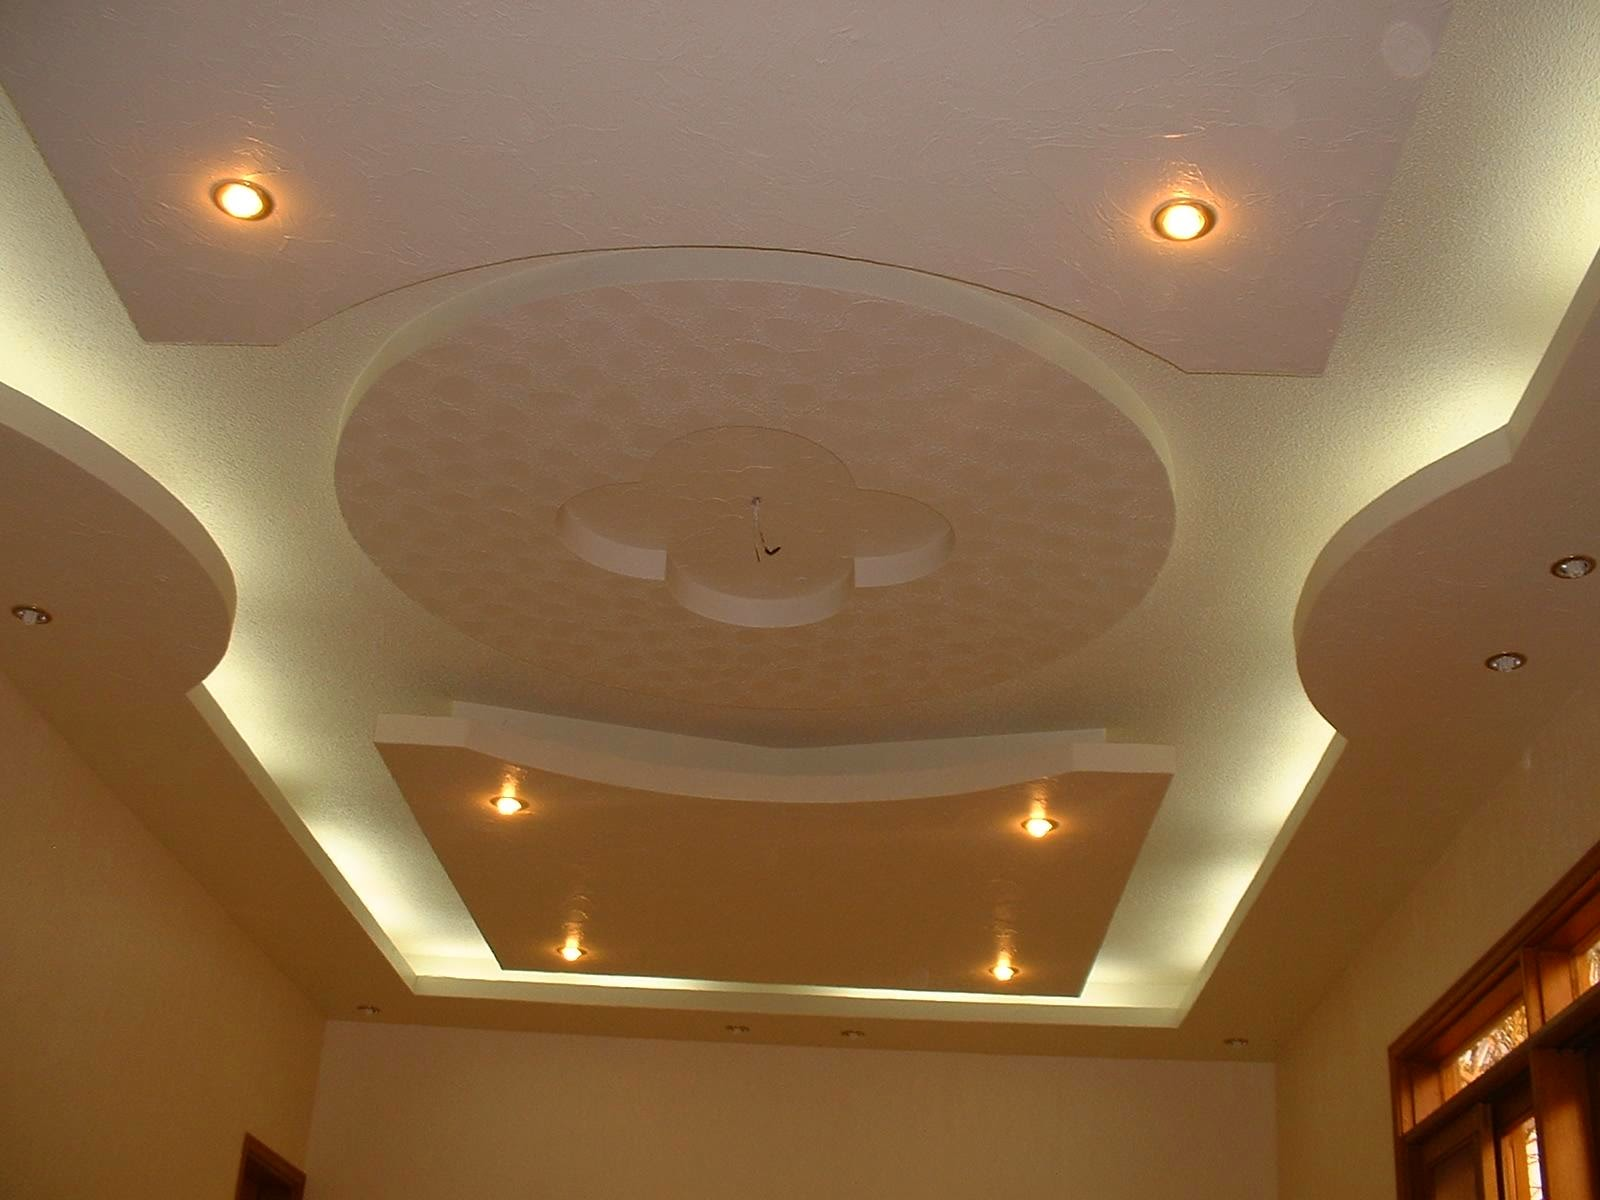 20 modern false ceiling designs made of gypsum board - Lights used in false ceiling ...